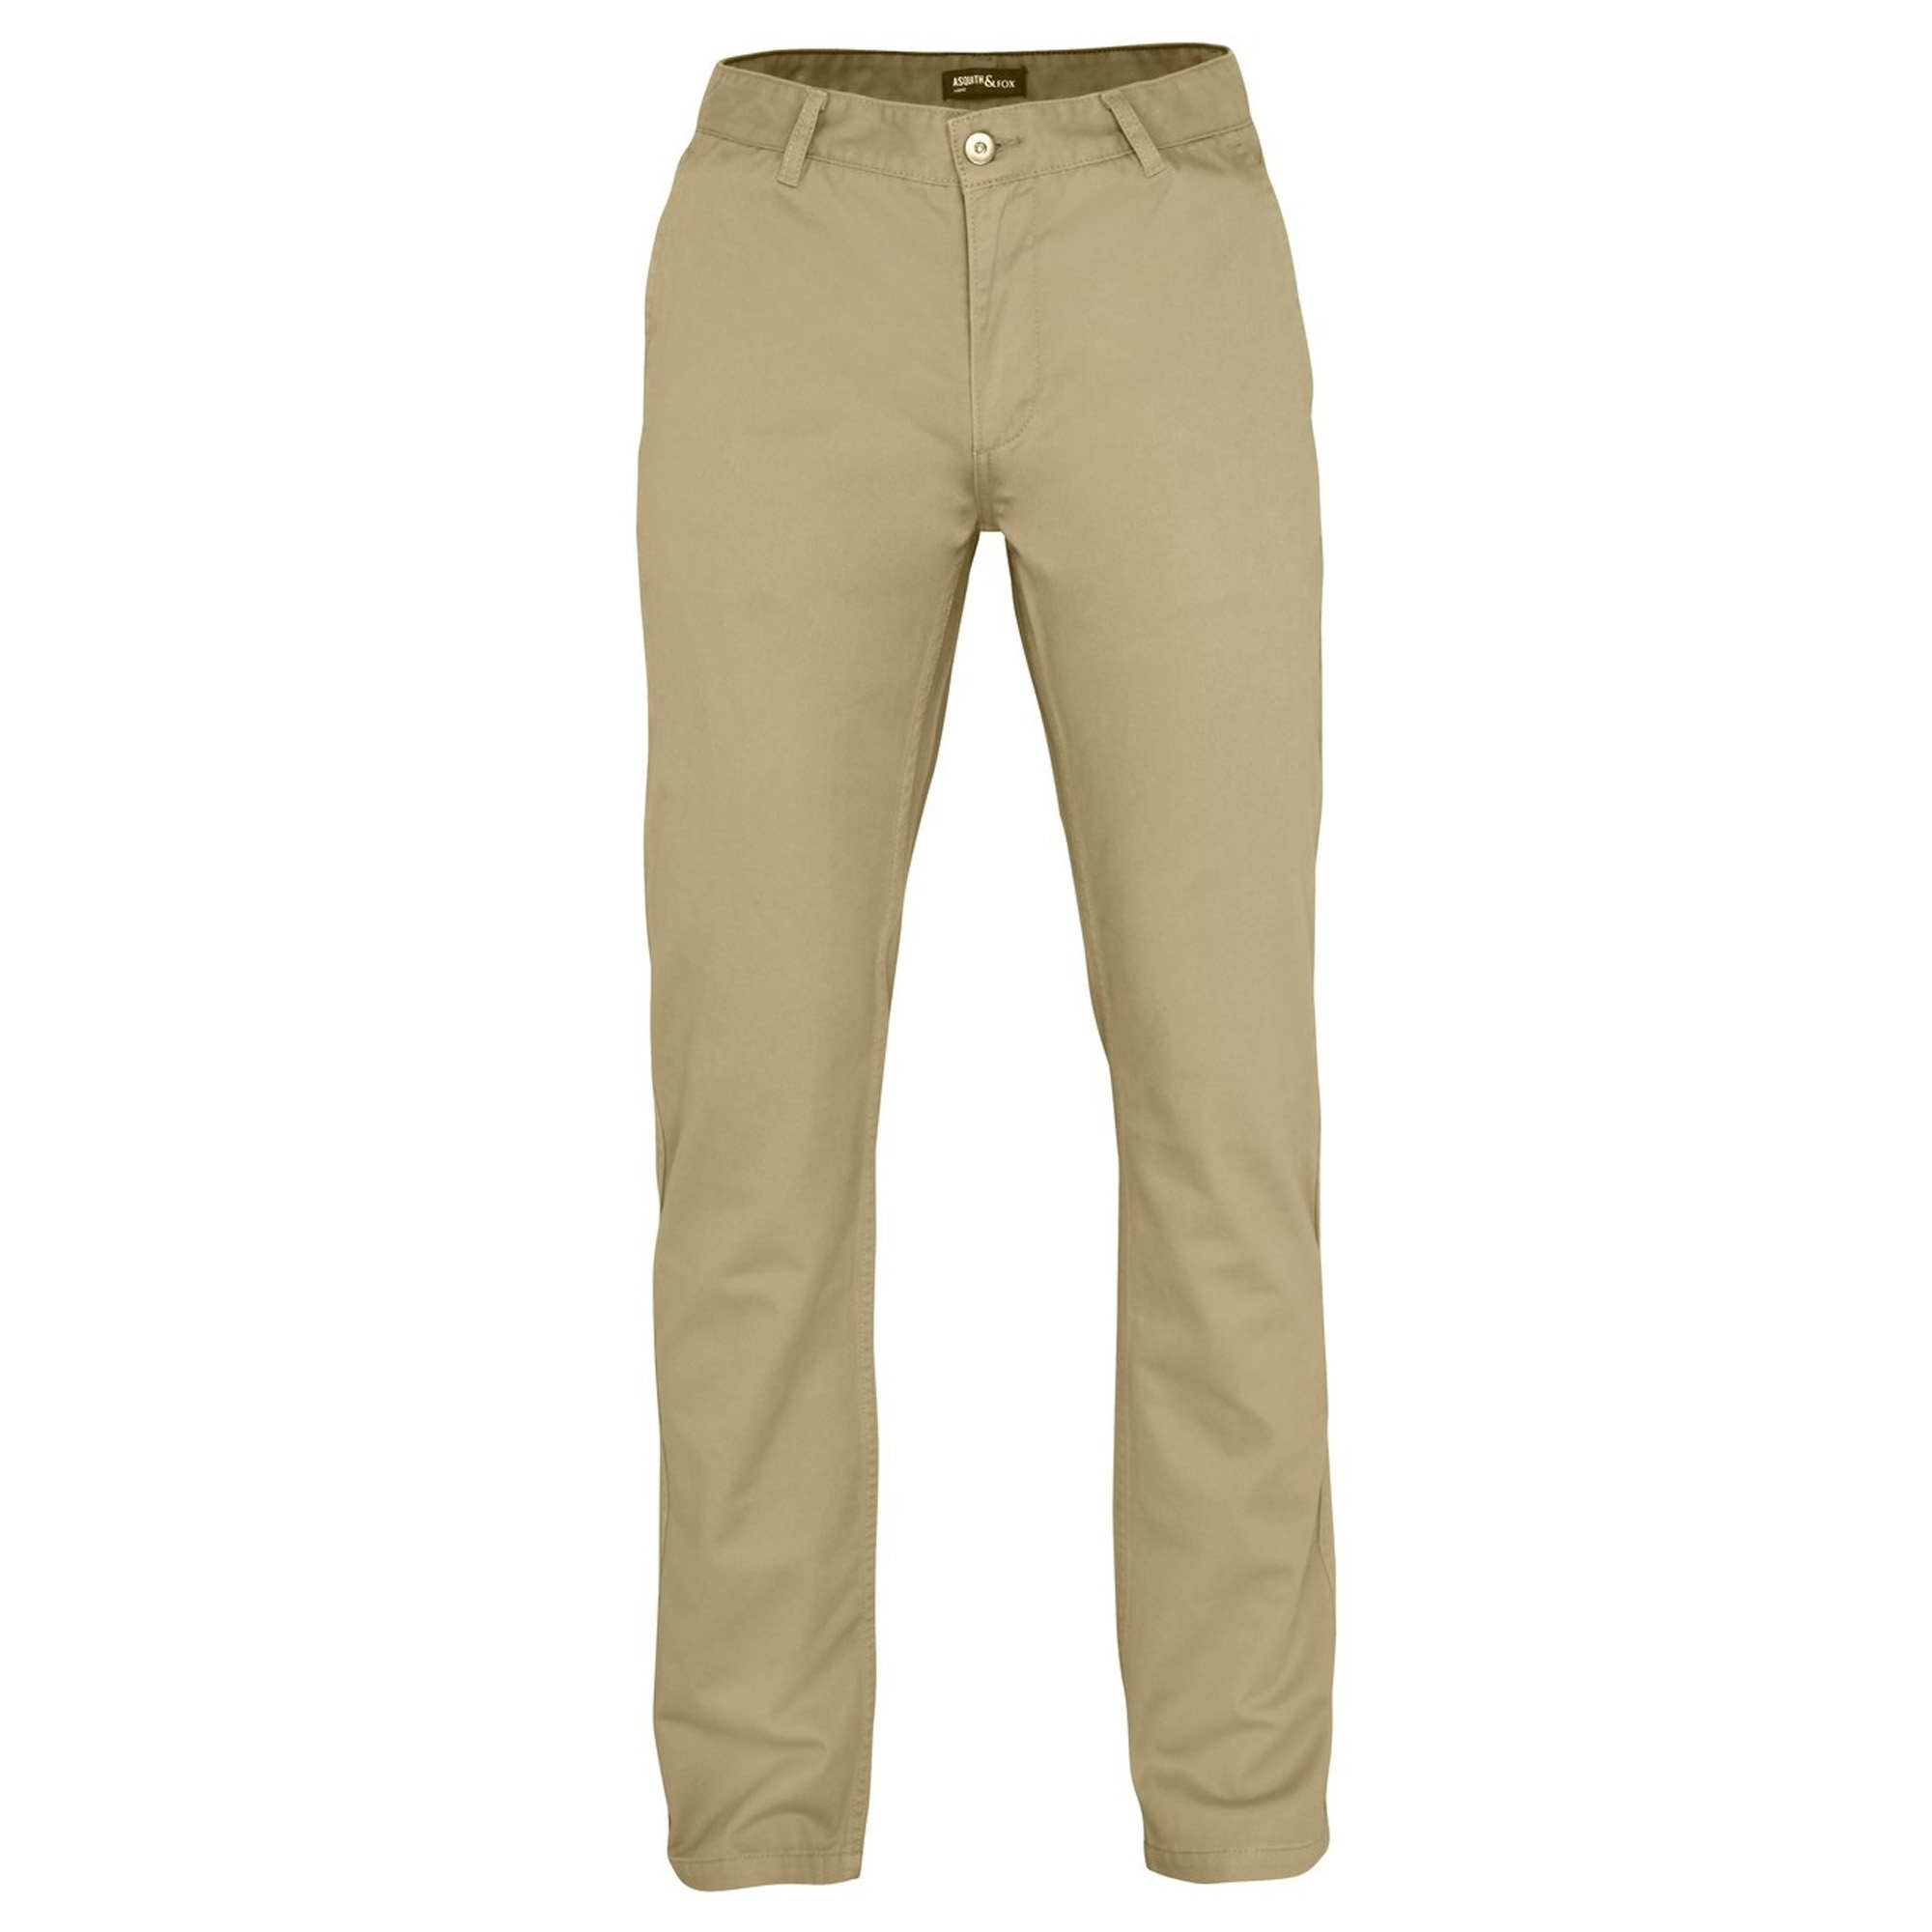 Asquith & Fox Mens Classic Casual Chinos/Trousers (4XLU) (Natural)